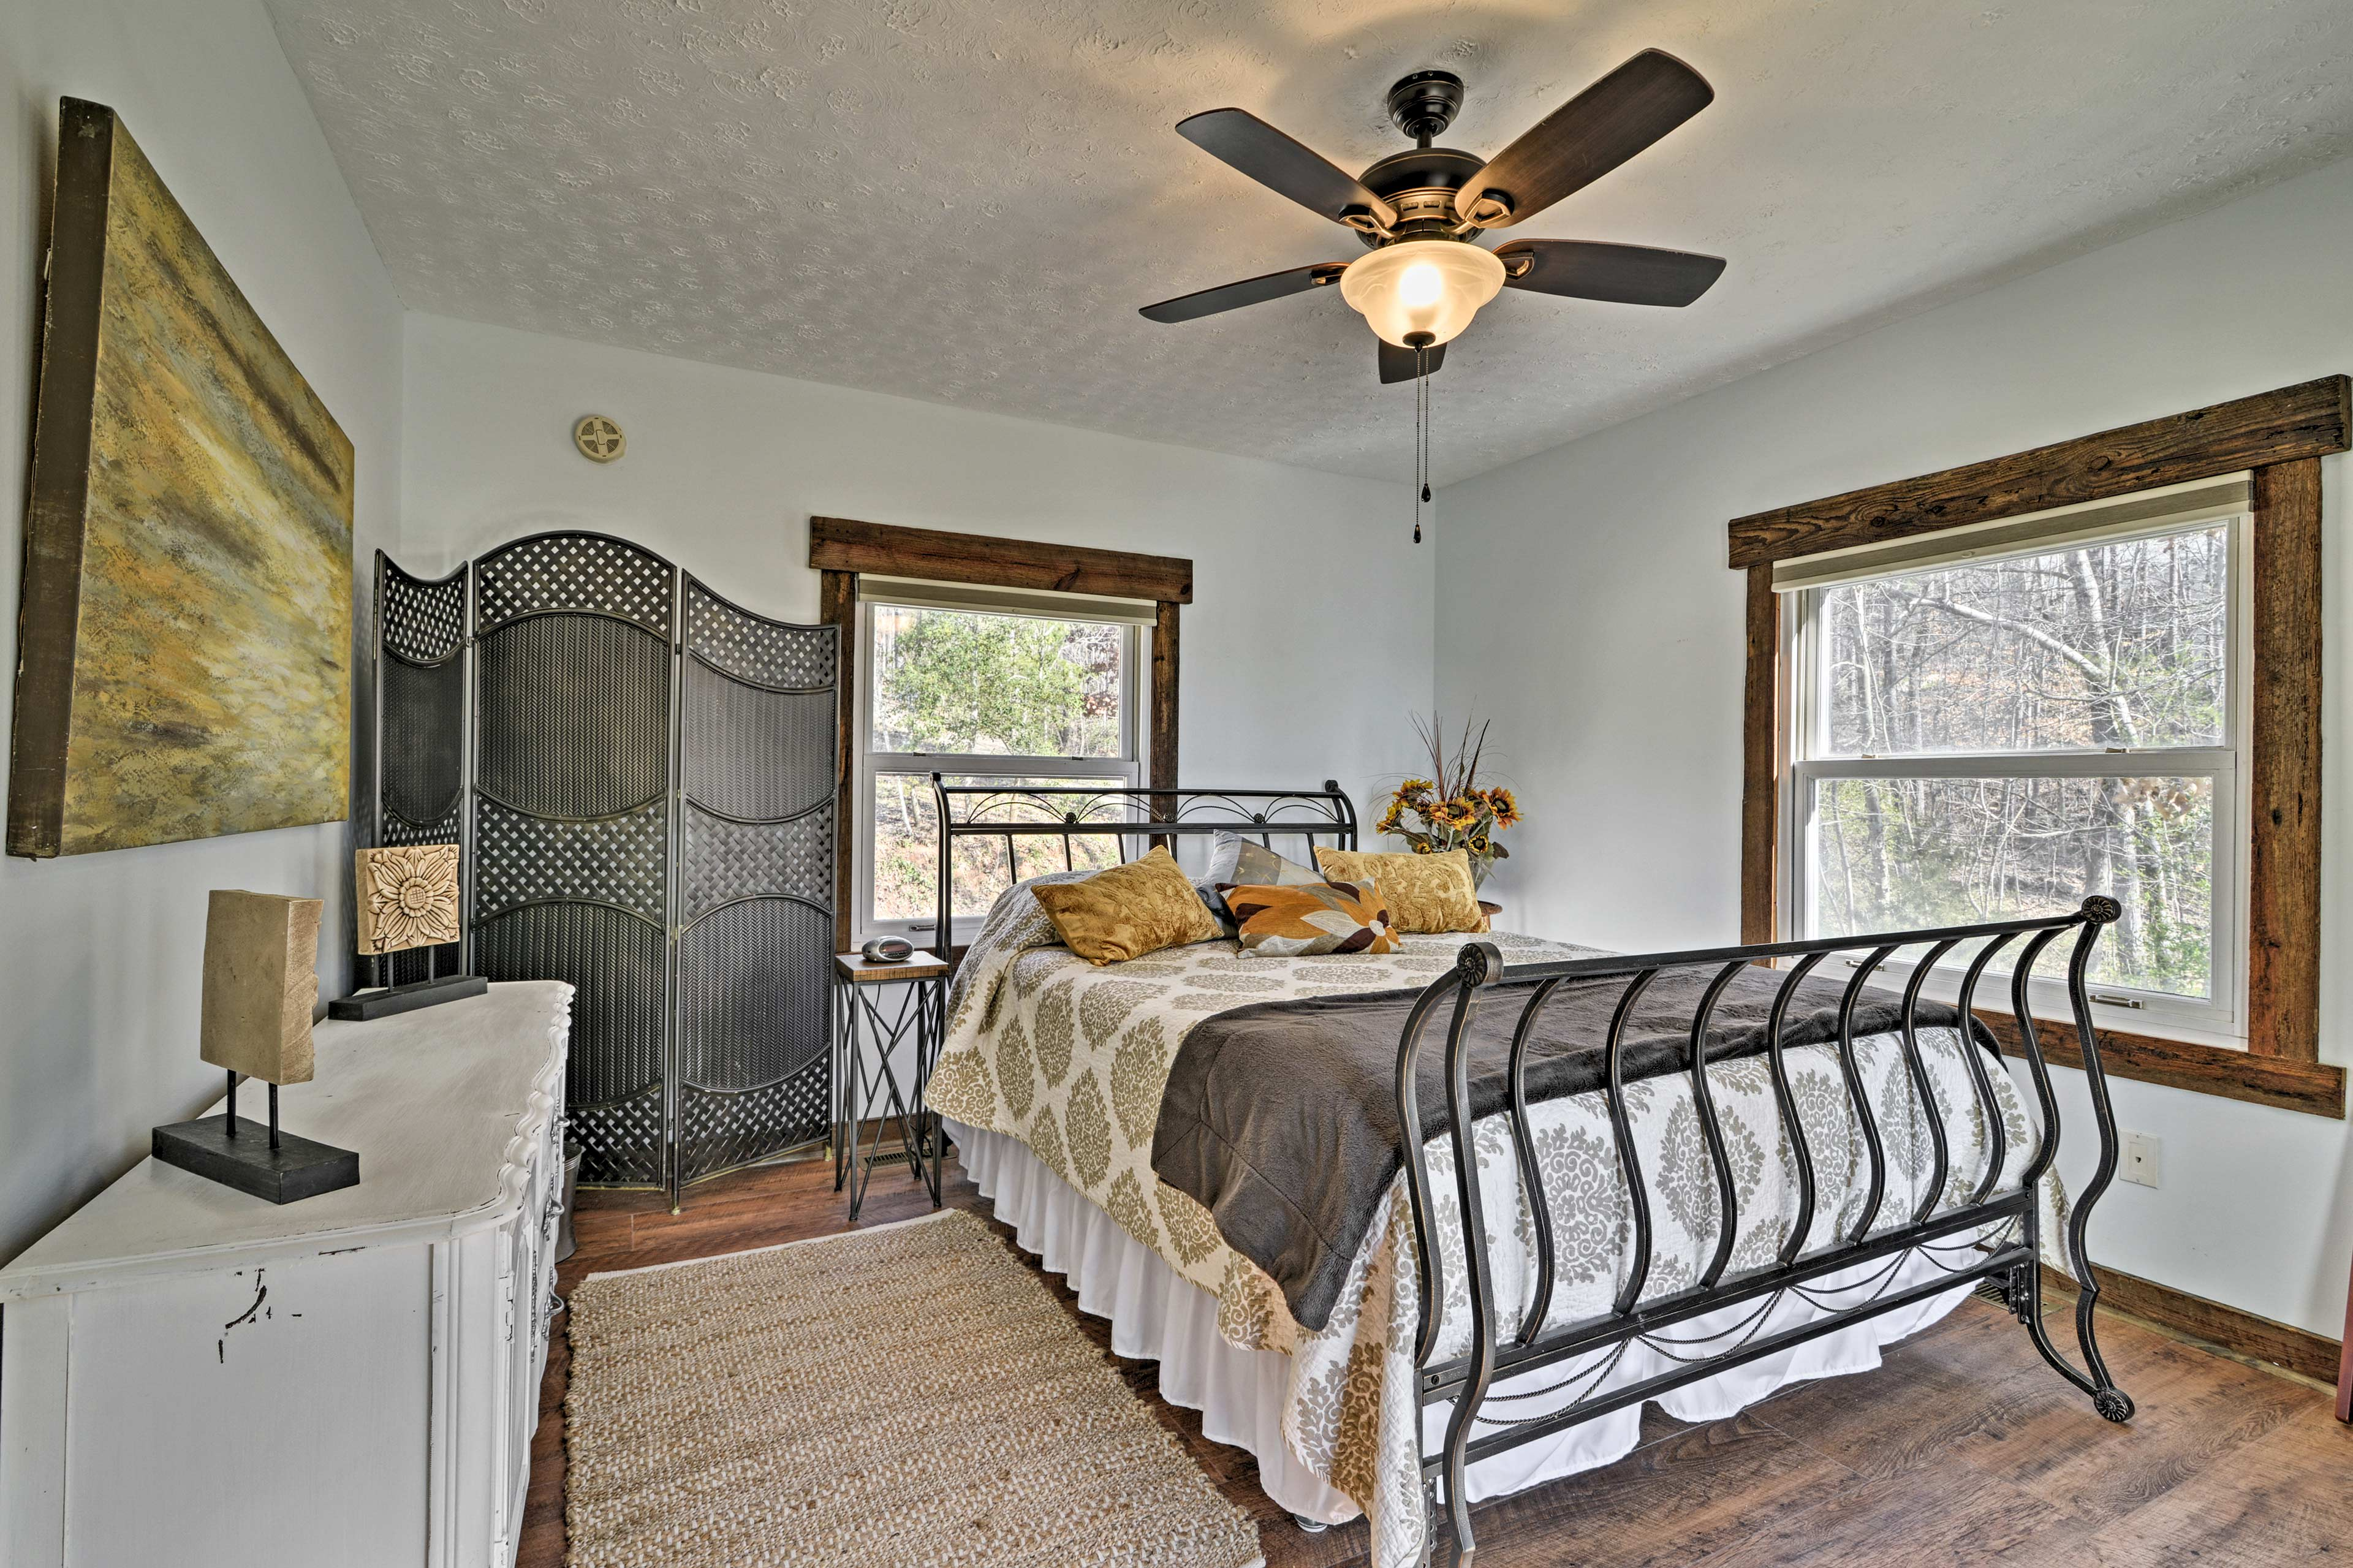 You'll find a comfortable queen bed in this room.